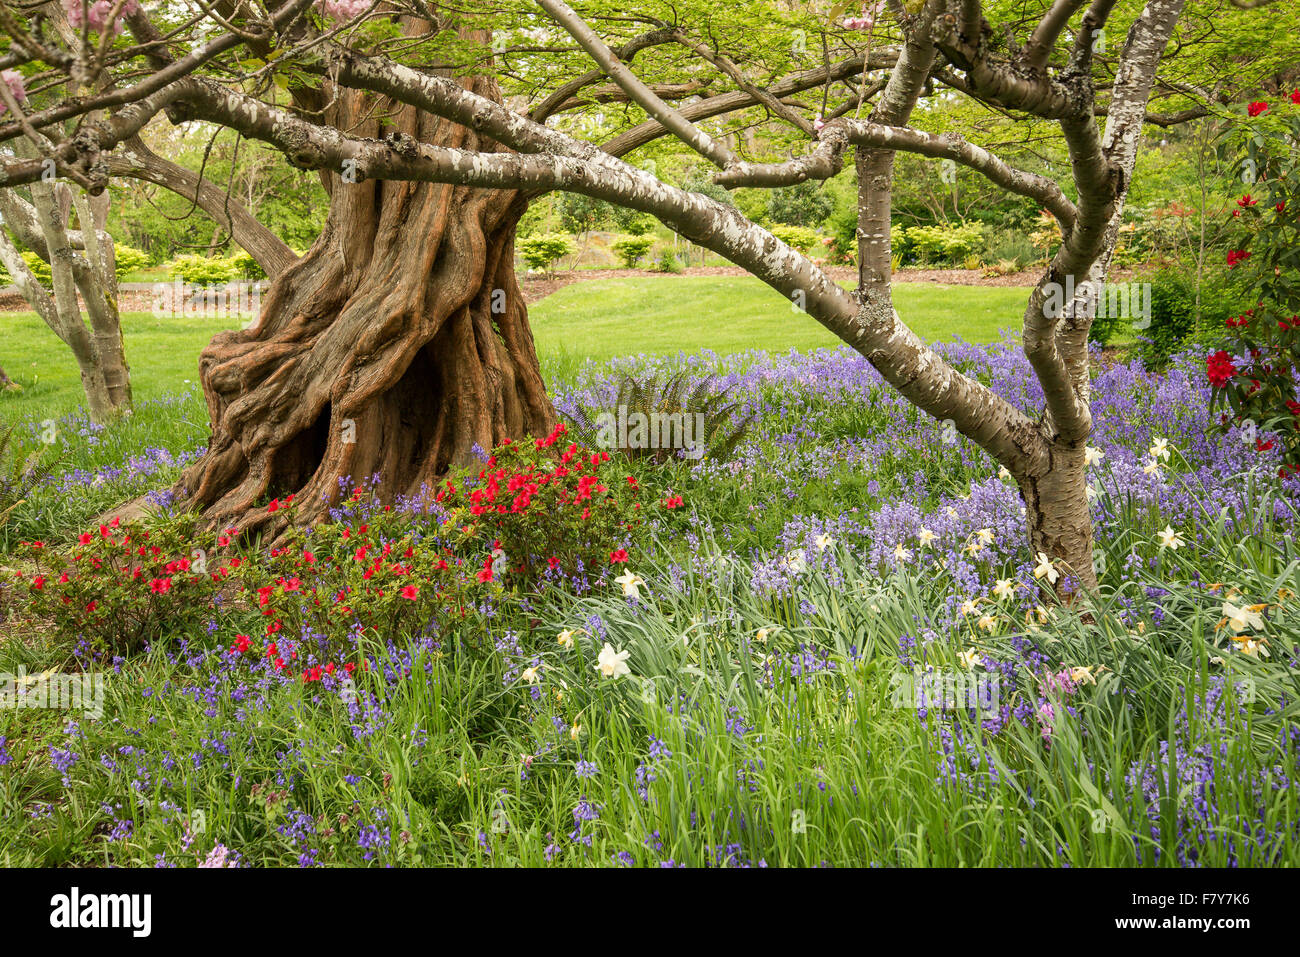 Dawn Redwood tree garden flowers, Beacon Hill Park, Victoria, British Columbia, Canada - Stock Image